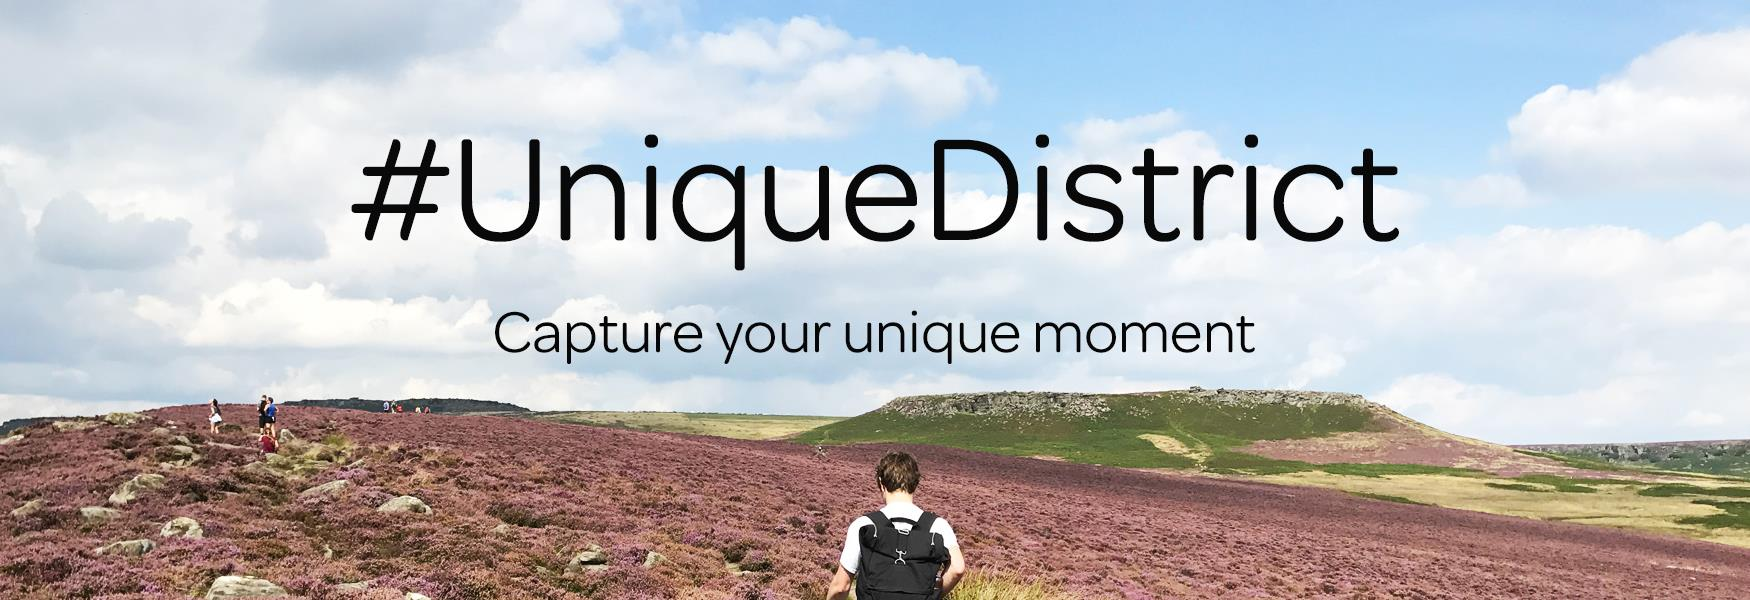 UniqueDistrict, Visit Peak District